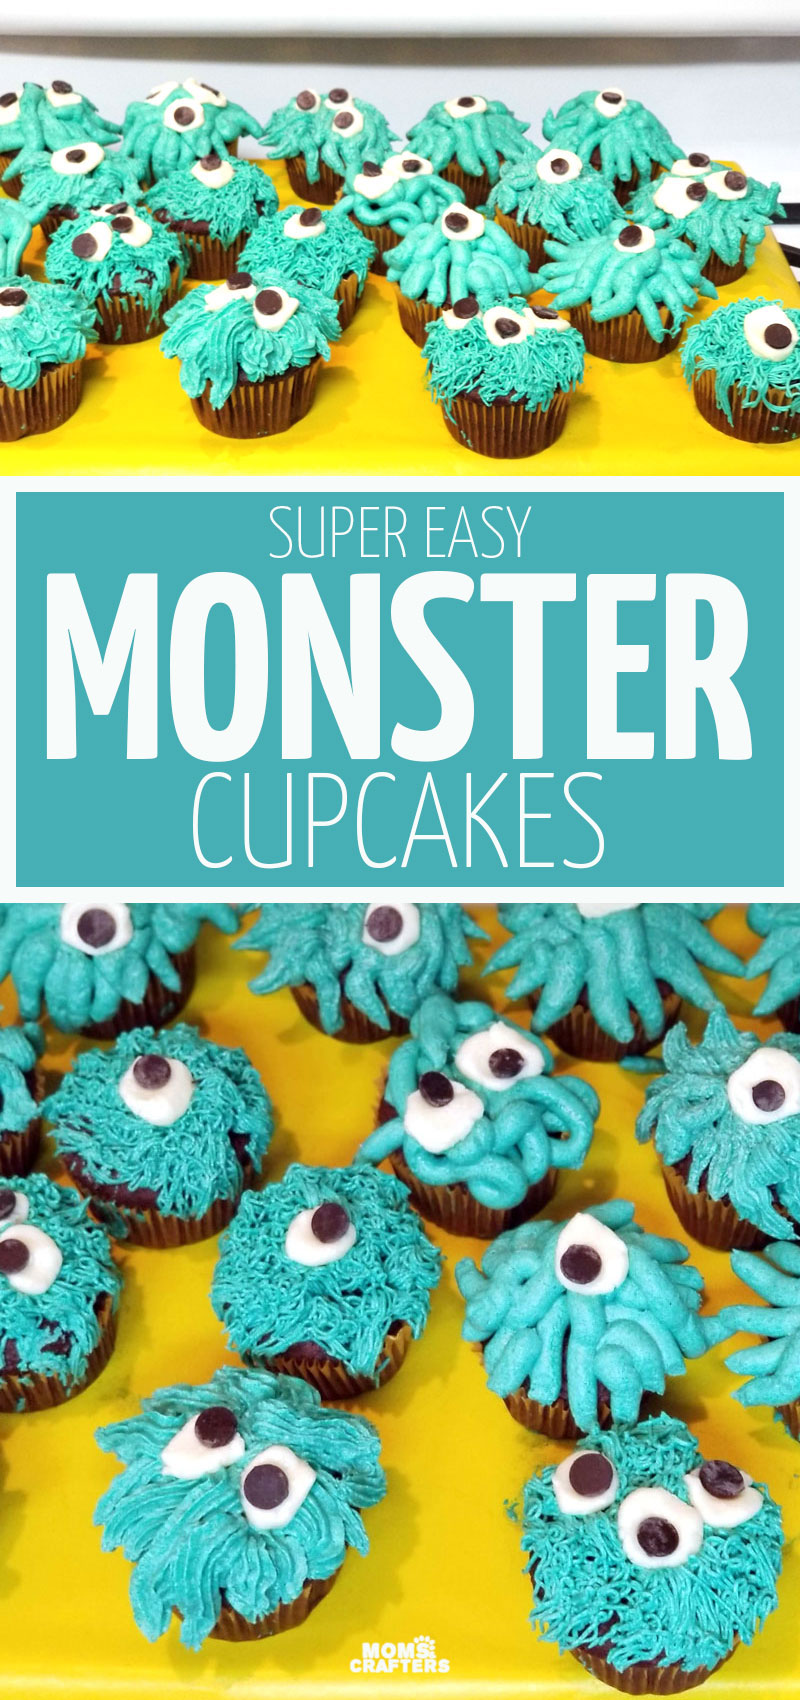 Click for monster birthday party food ideas including these adorable monster cupcakes that are easy for beginners to make!